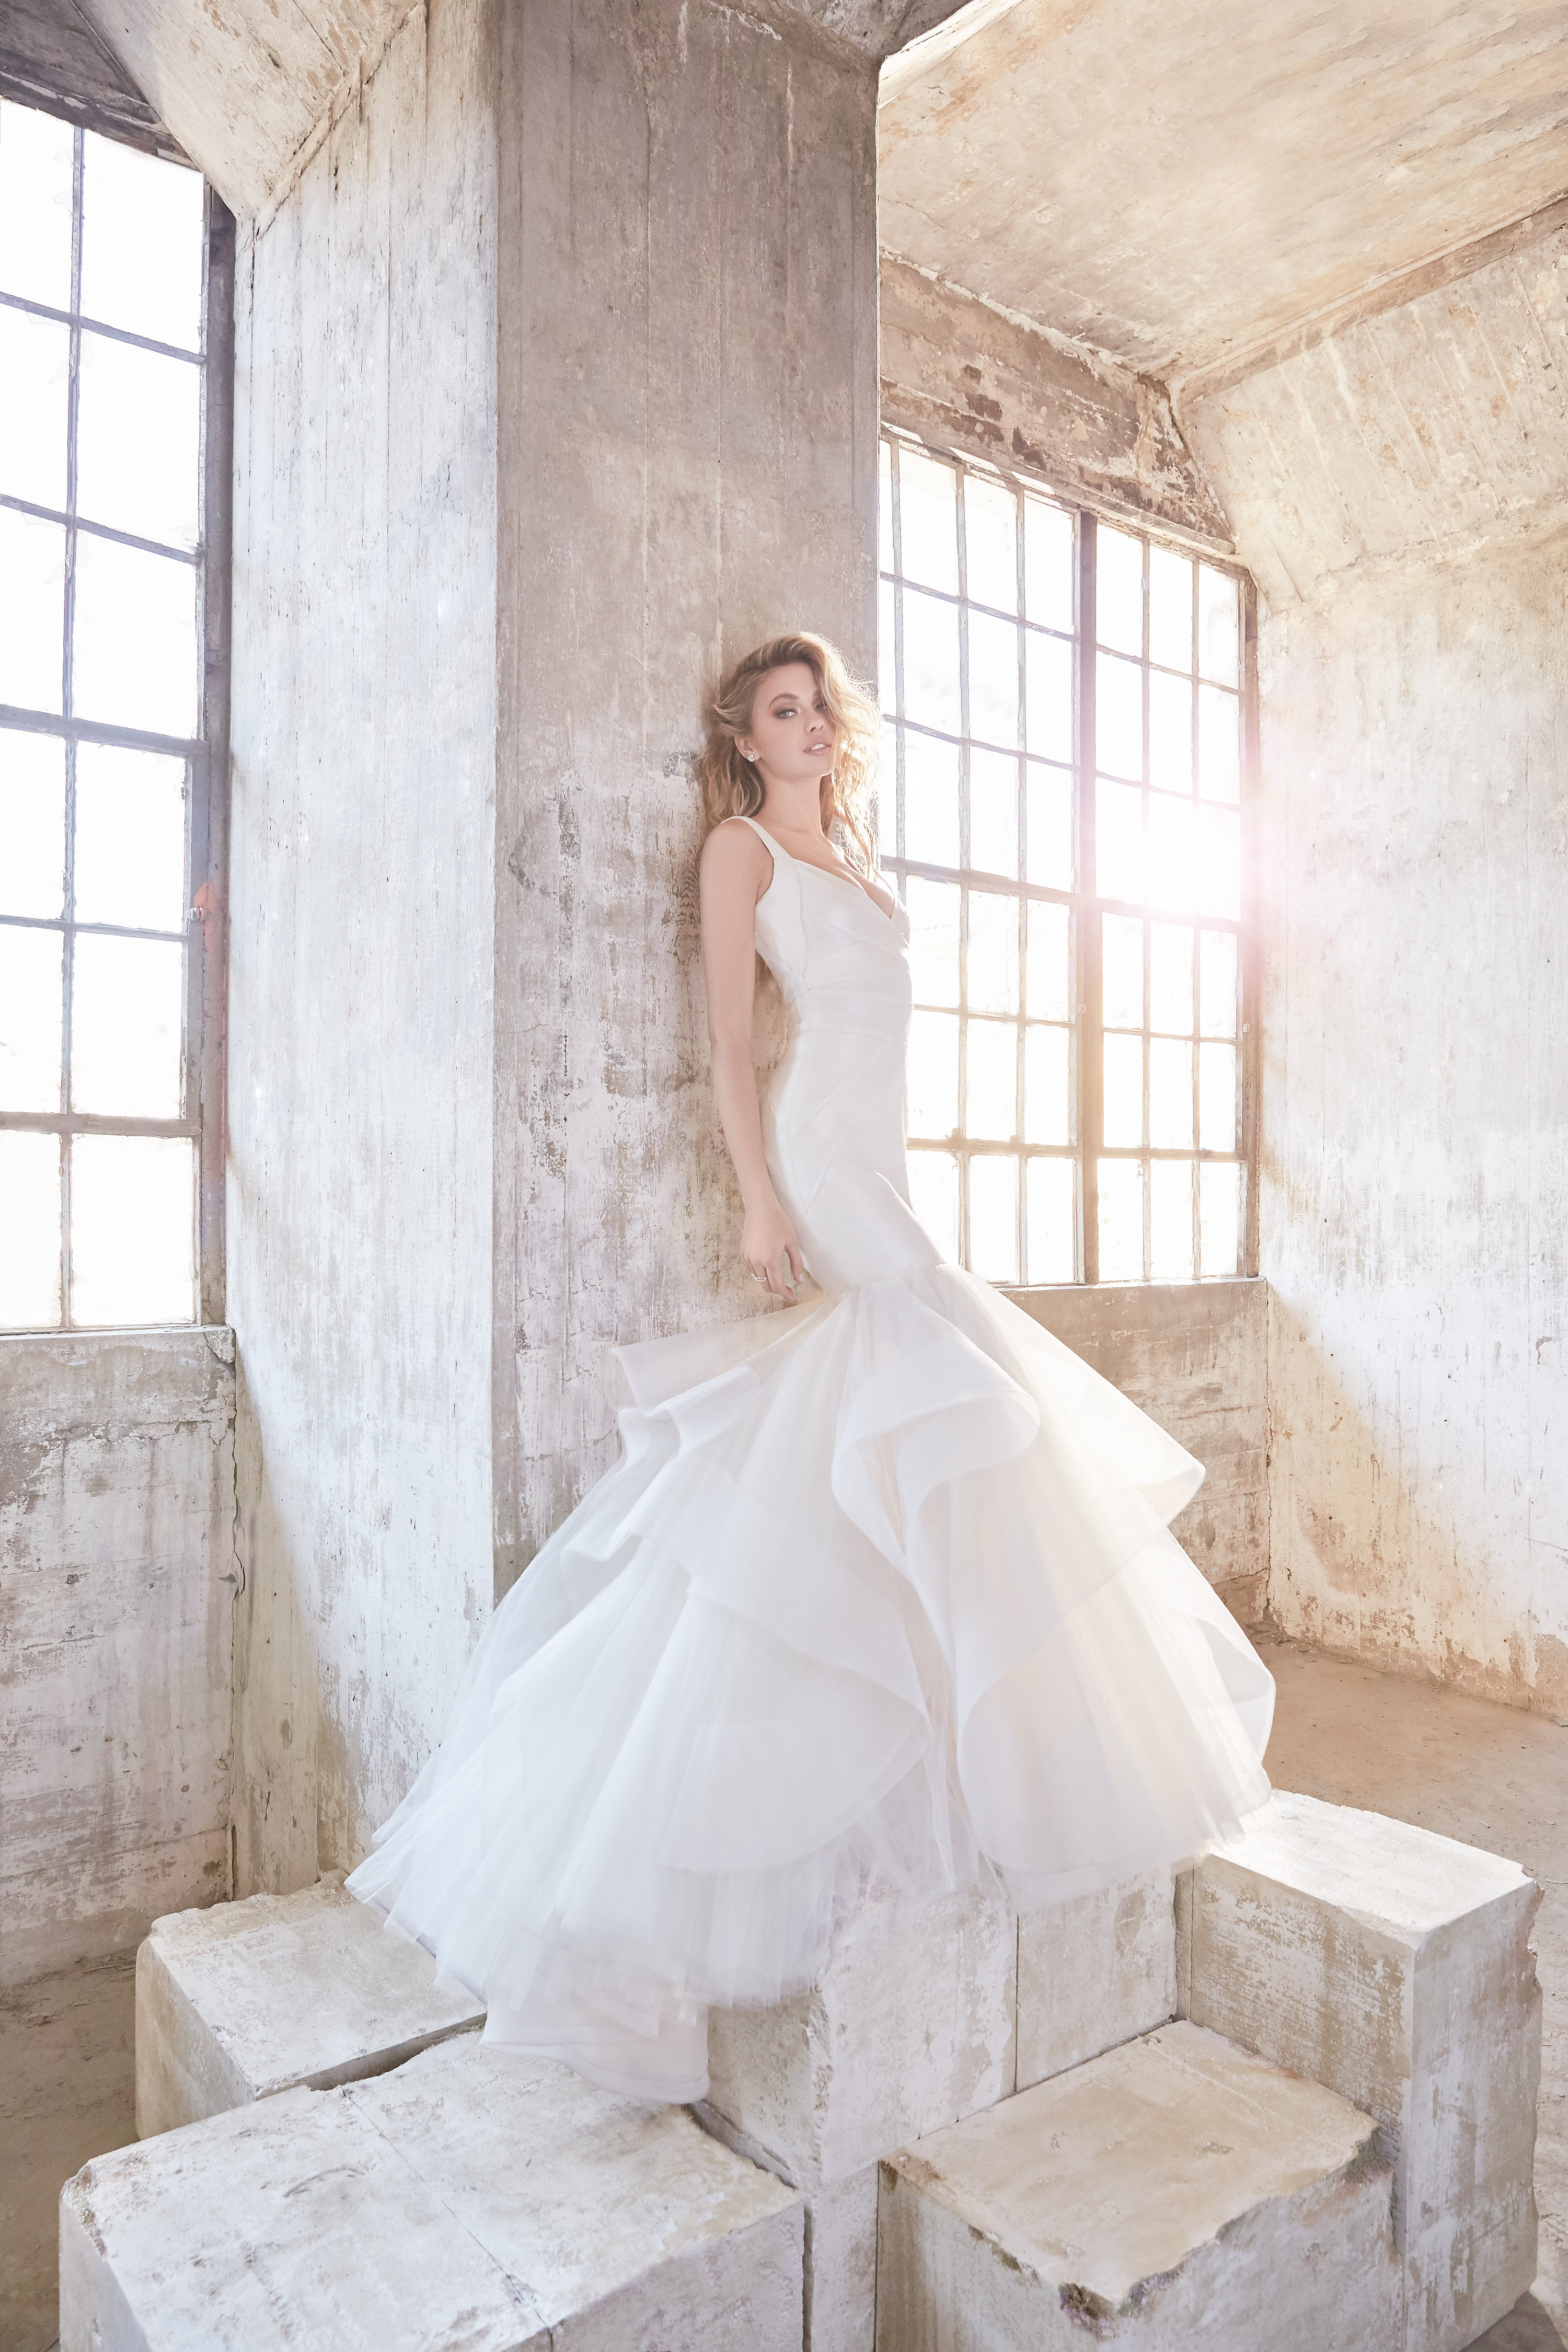 Bridal Gowns And Wedding Dresses By Jlm Couture Style 6802 Glazer